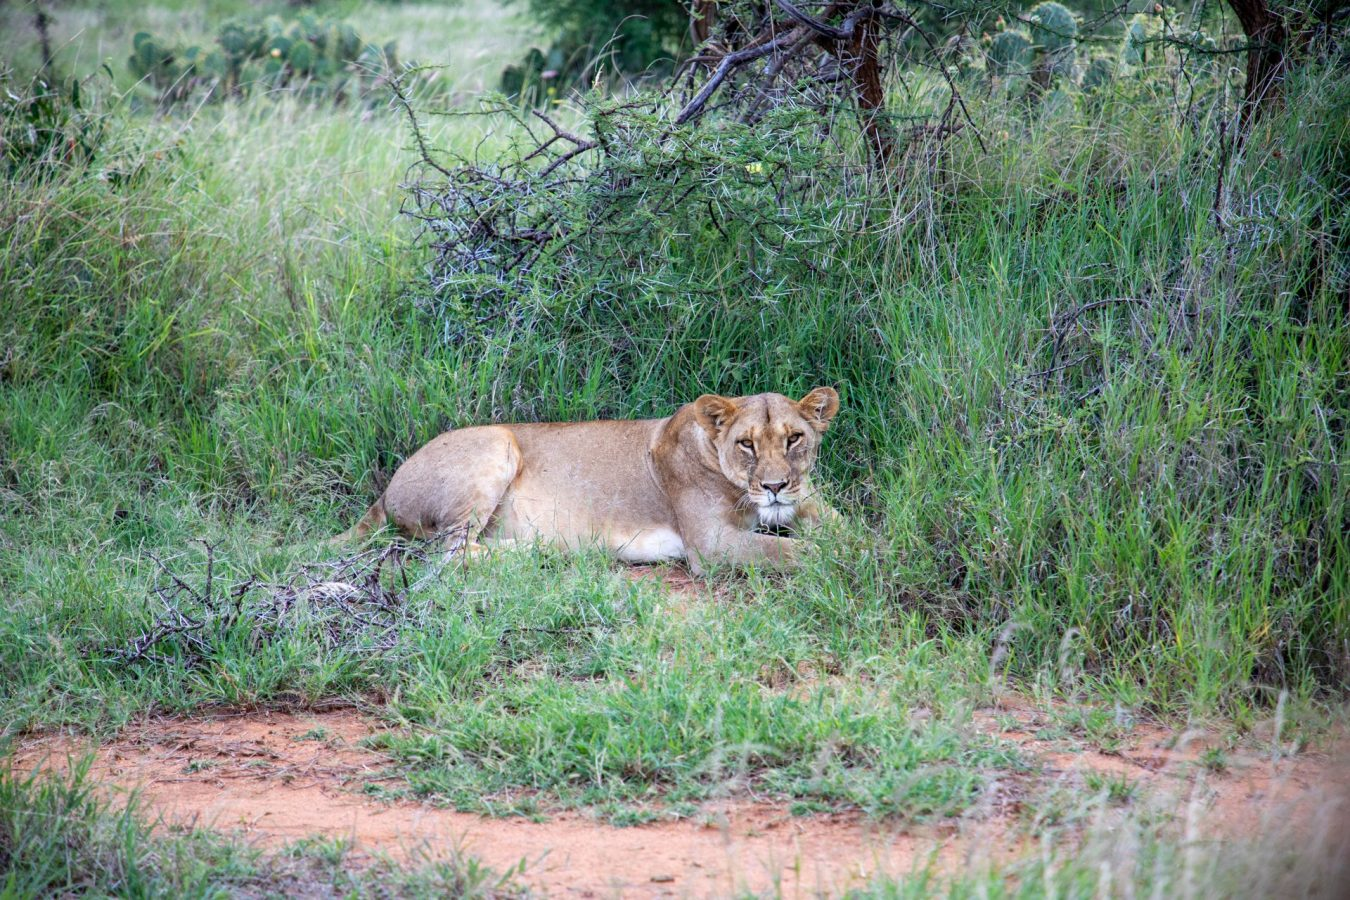 Our first lion sighting